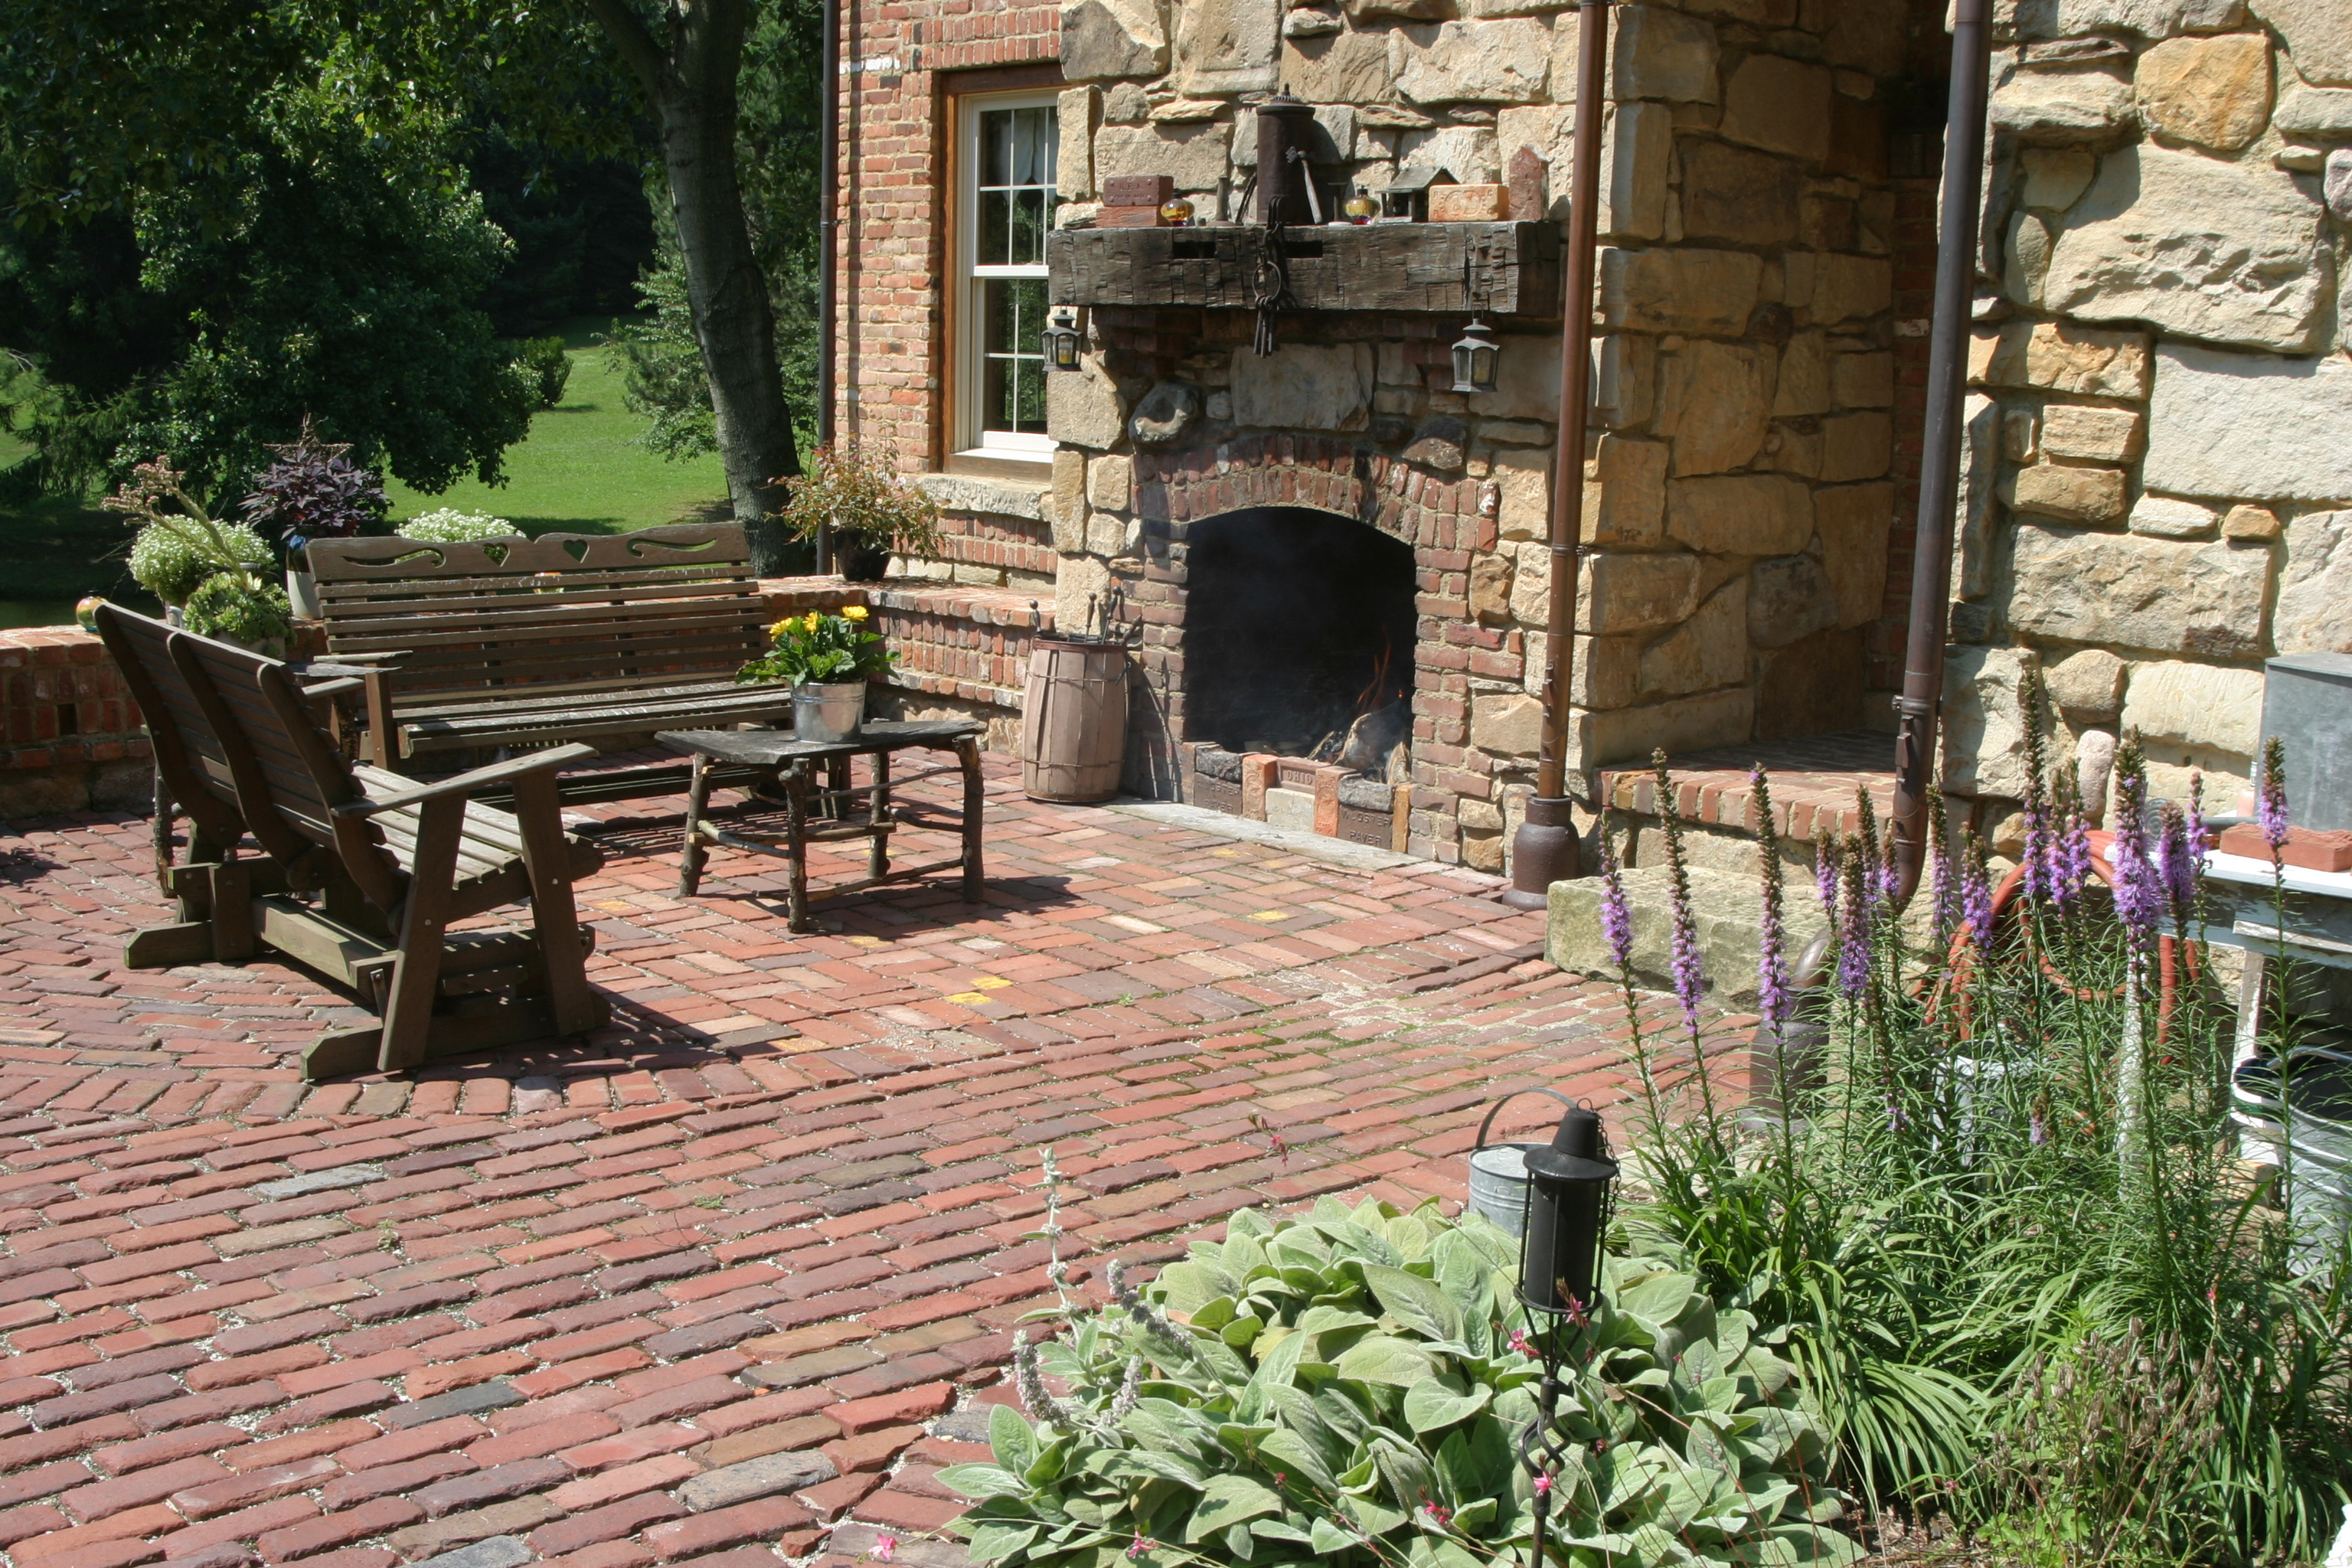 Pictures Of Outdoor Patios With Fireplaces : Indooroutdoor fireplace and outdoor patio area detail  Yoder